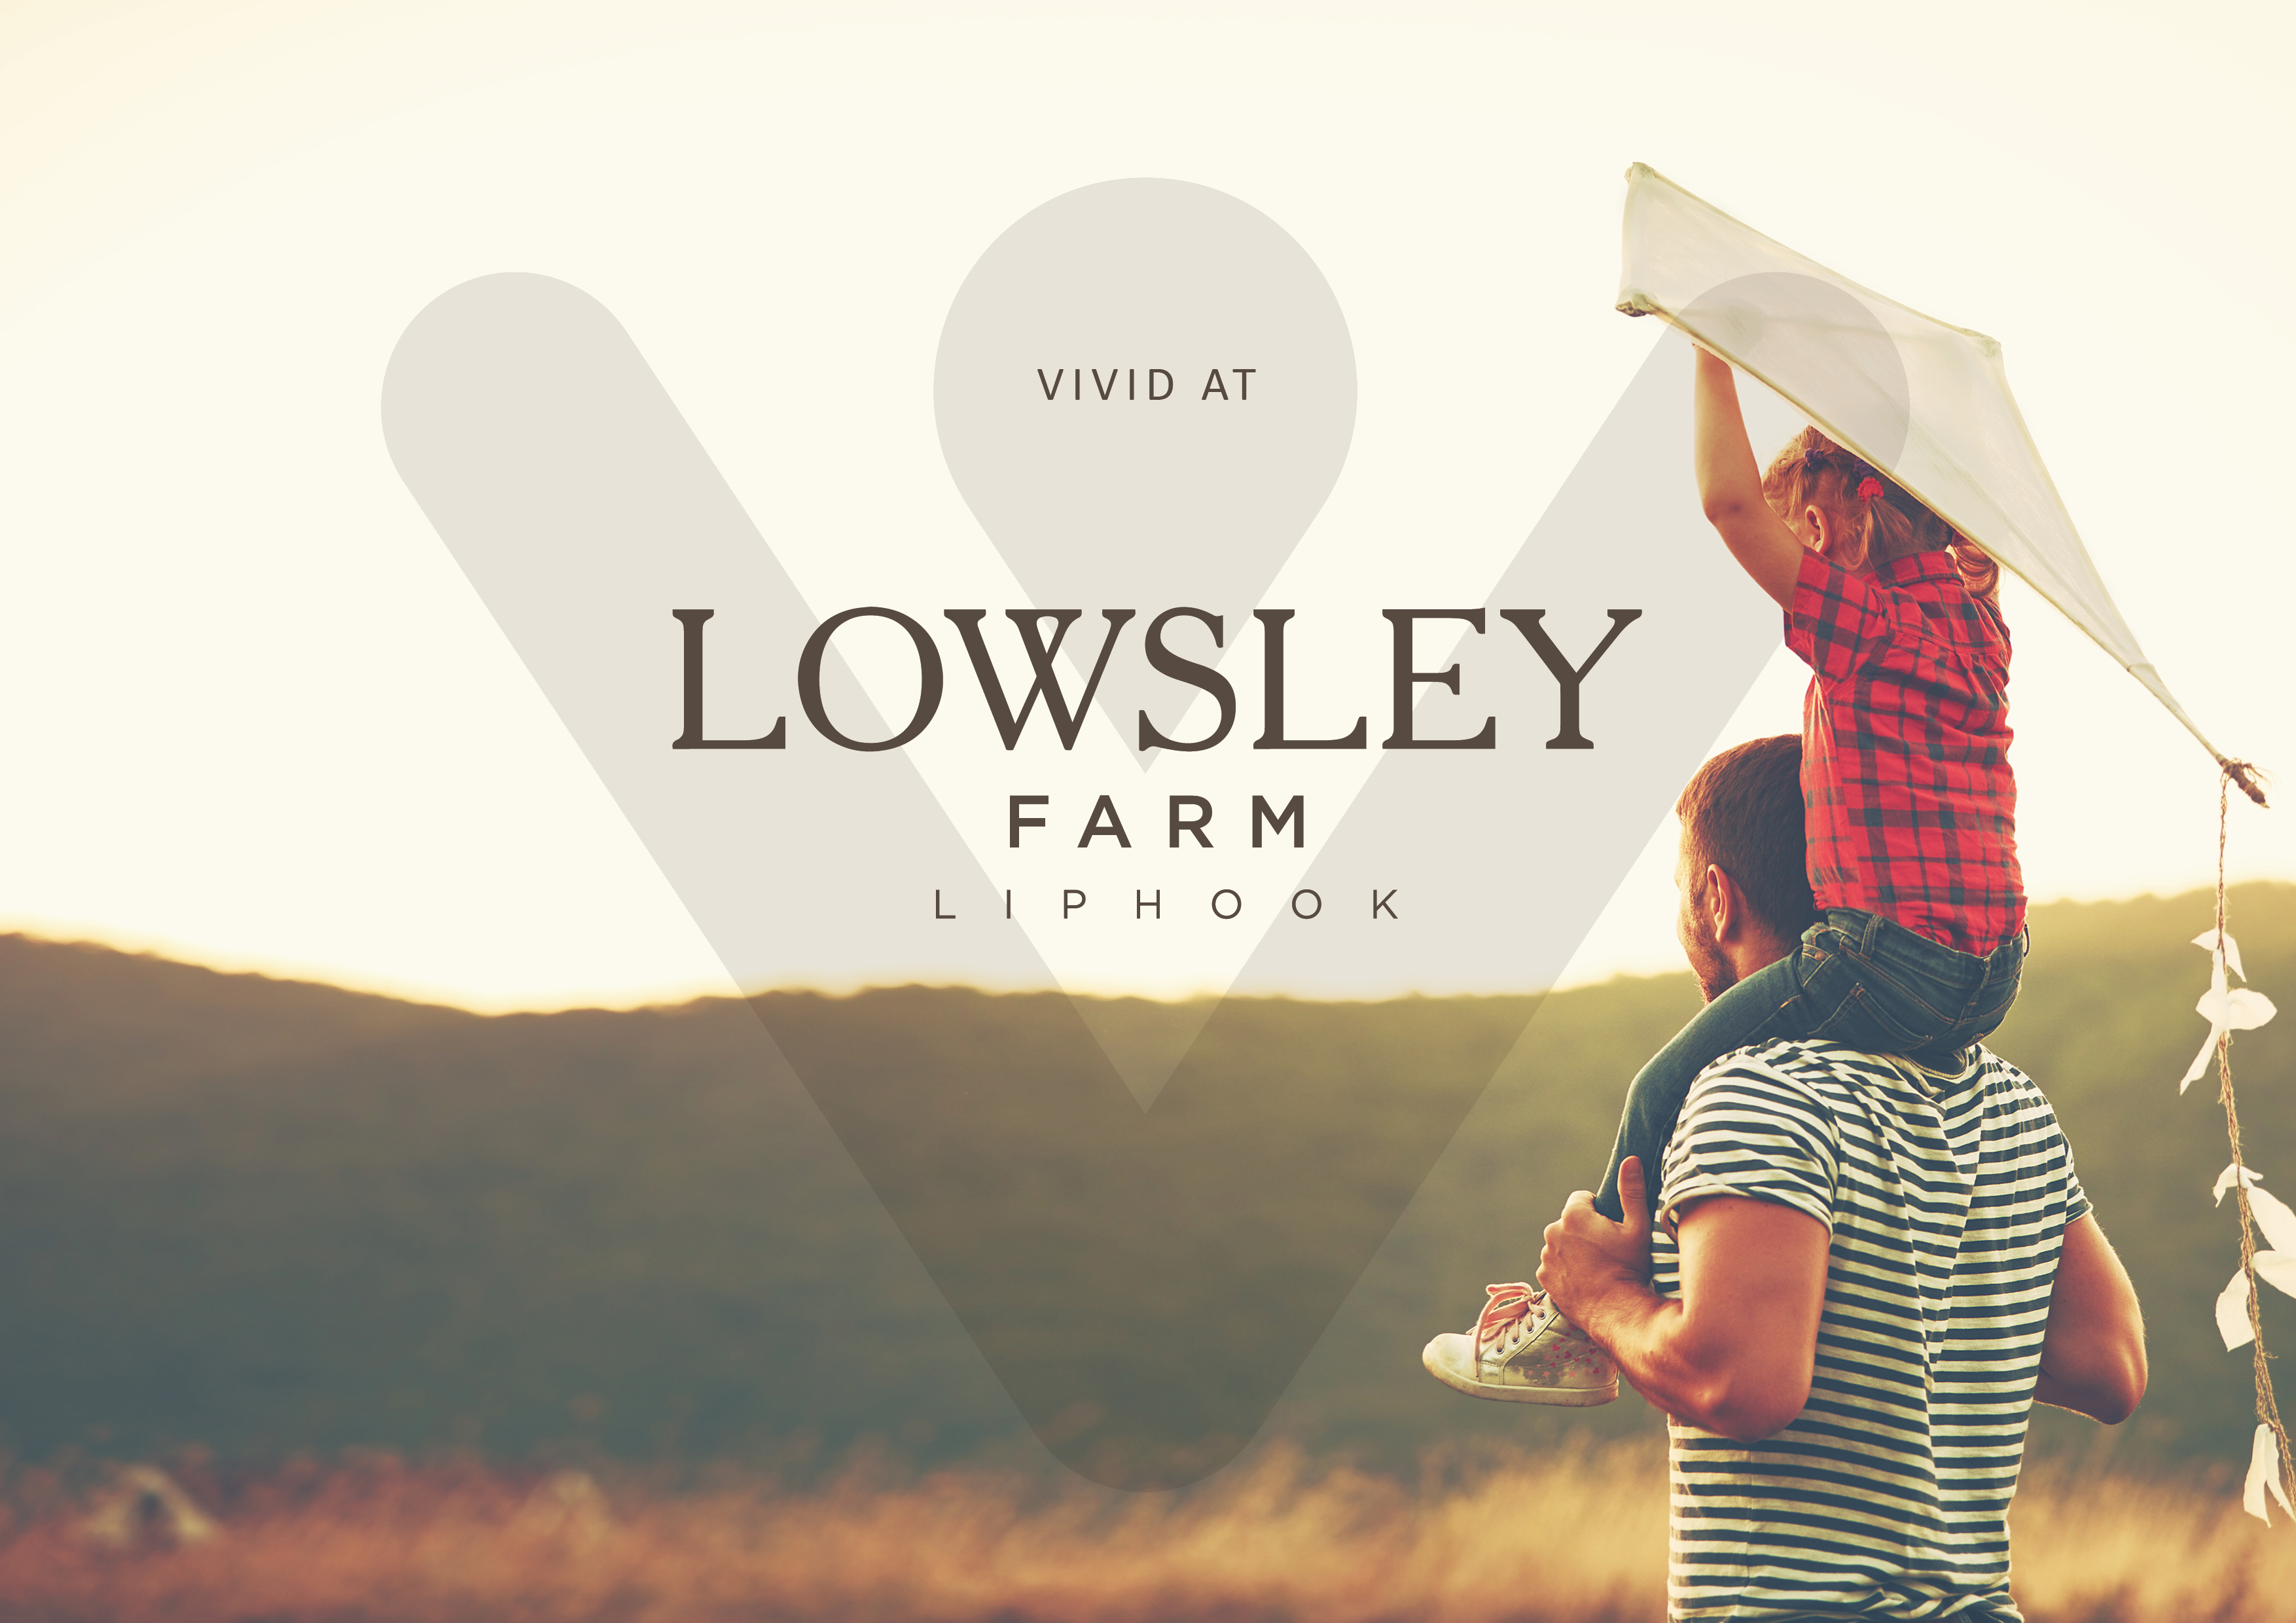 Lowsley Farm